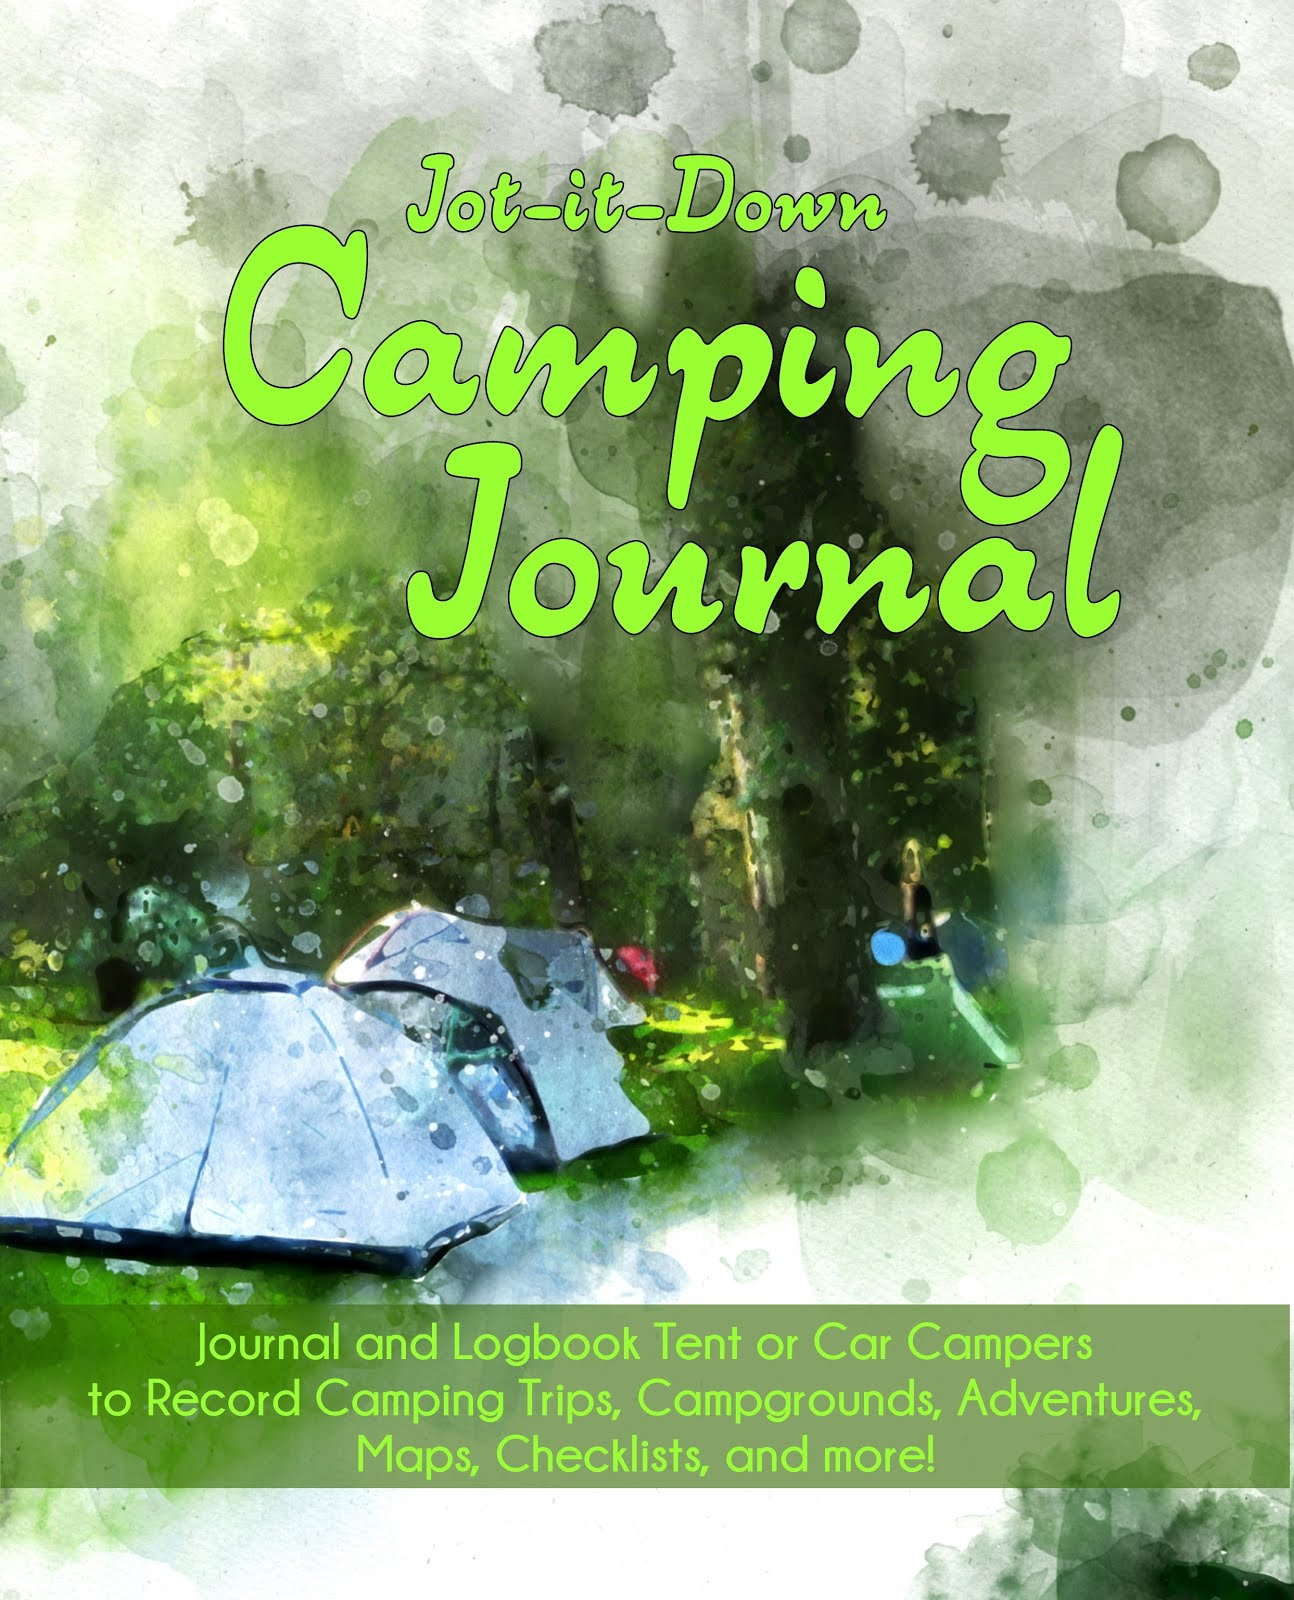 Jot it Down Camping Journal